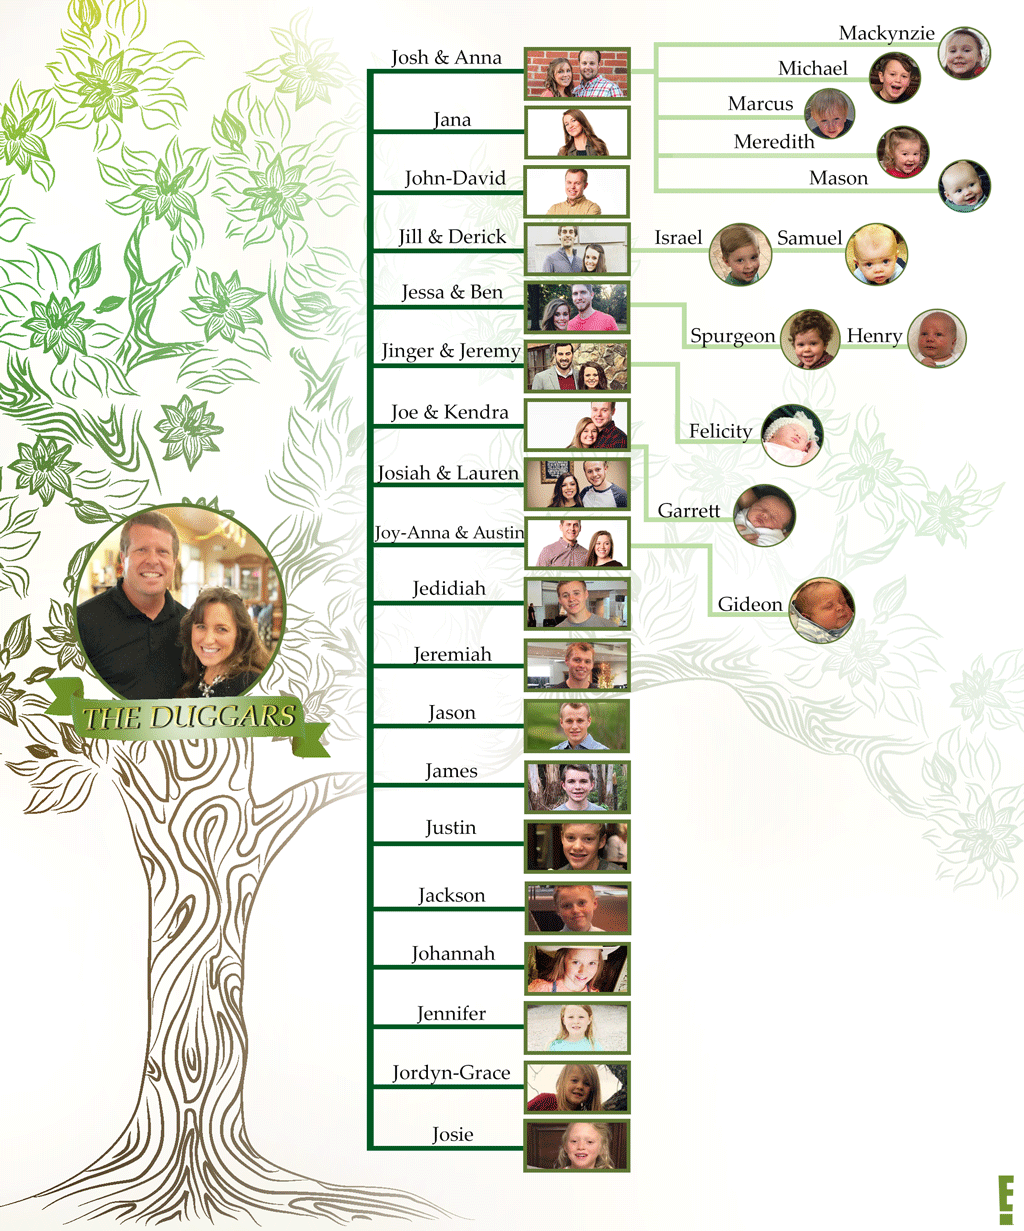 Updated Duggars Family Tree